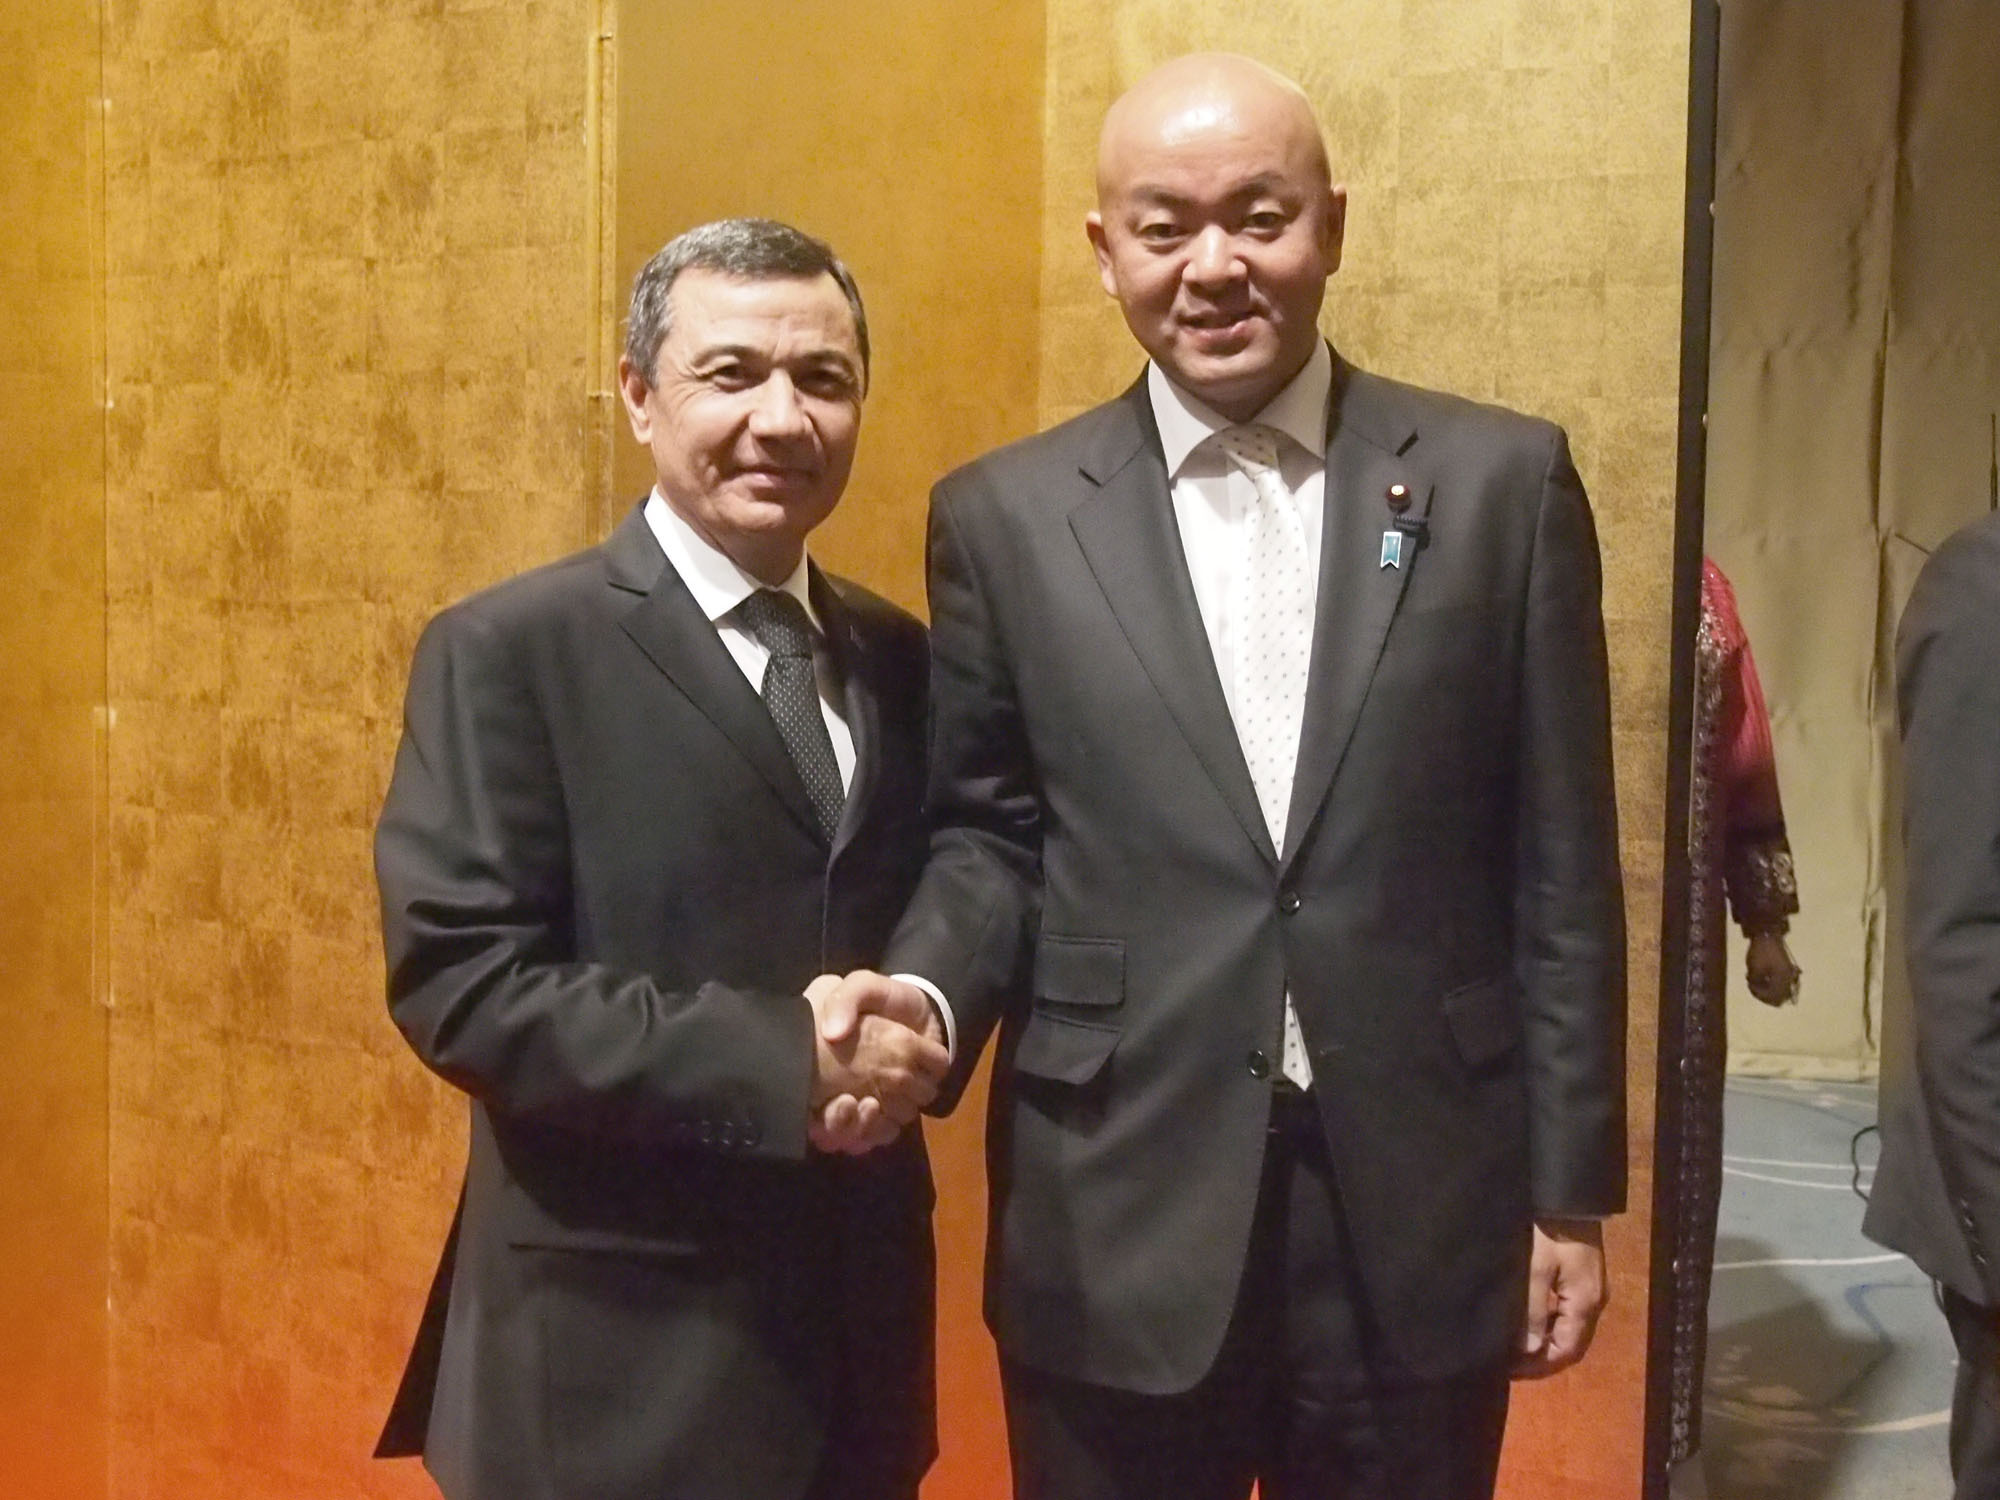 Turkmenistan Ambassador Gurbanmammet Elyasov (left) welcomes Manabu Horii, parliamentary vice-minister for foreign affairs, during a reception to celebrate the country's independence day at Palace Hotel Tokyo on Nov. 10. |   EDLEEN OTHMAN